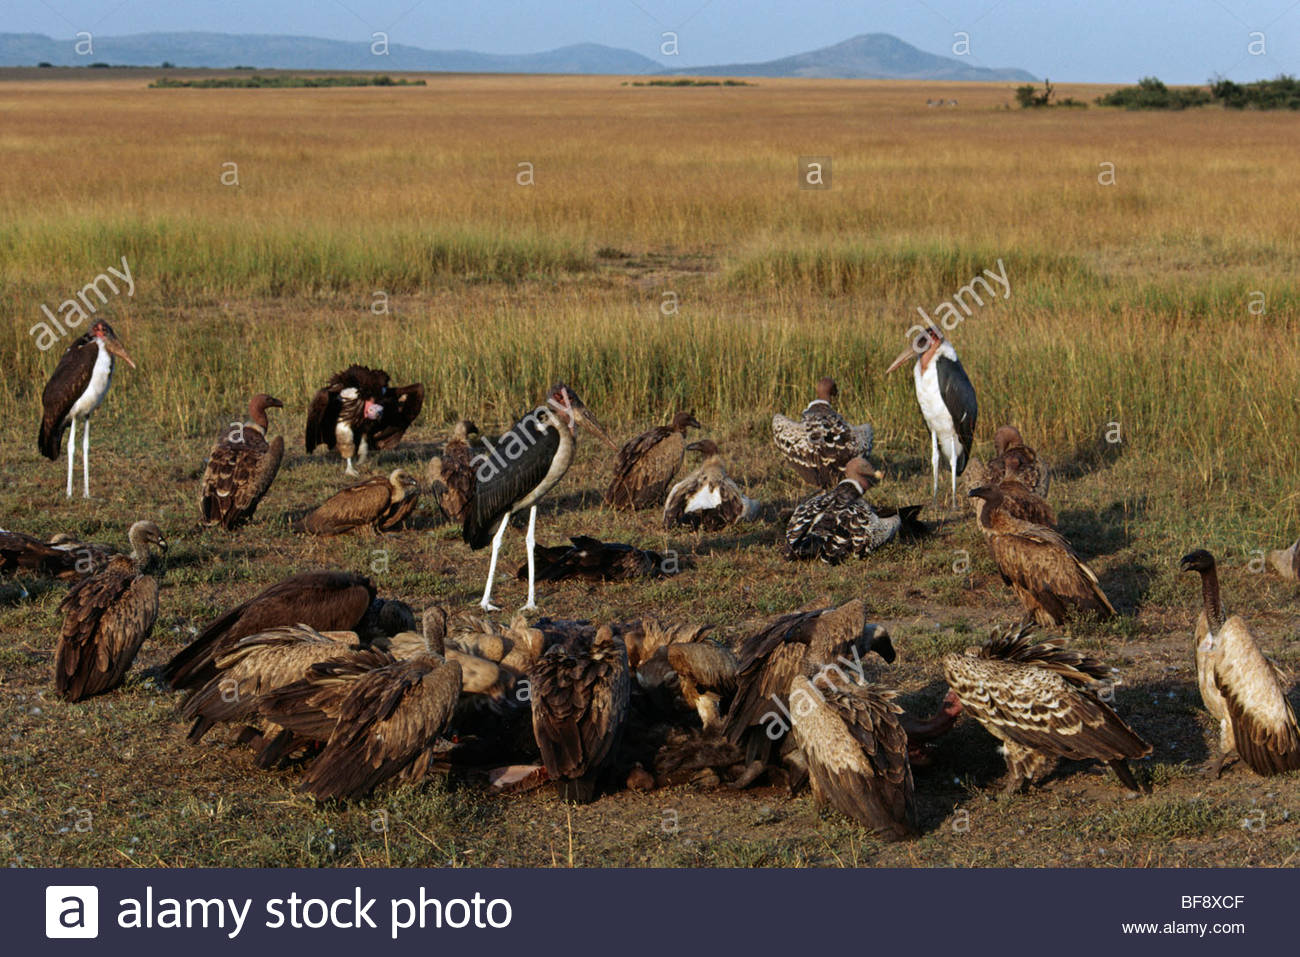 Vultures and marabou storks scavenging on kill, Masai Mara Reserve, East Africa - Stock Image